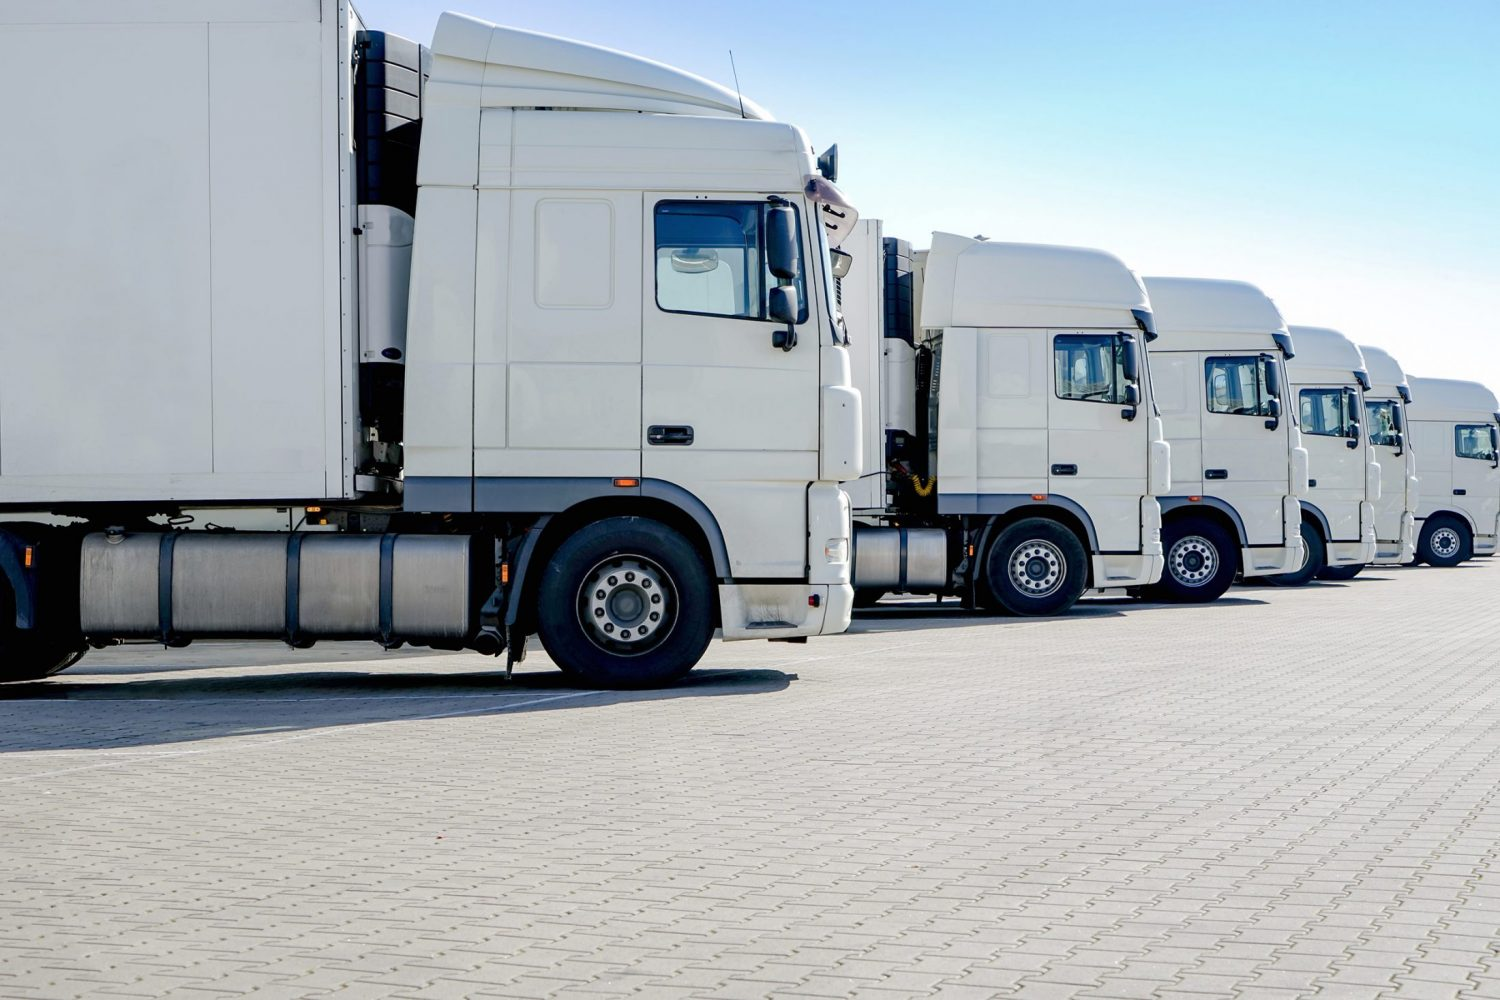 Transport Logistics and Vehicle Connectivity